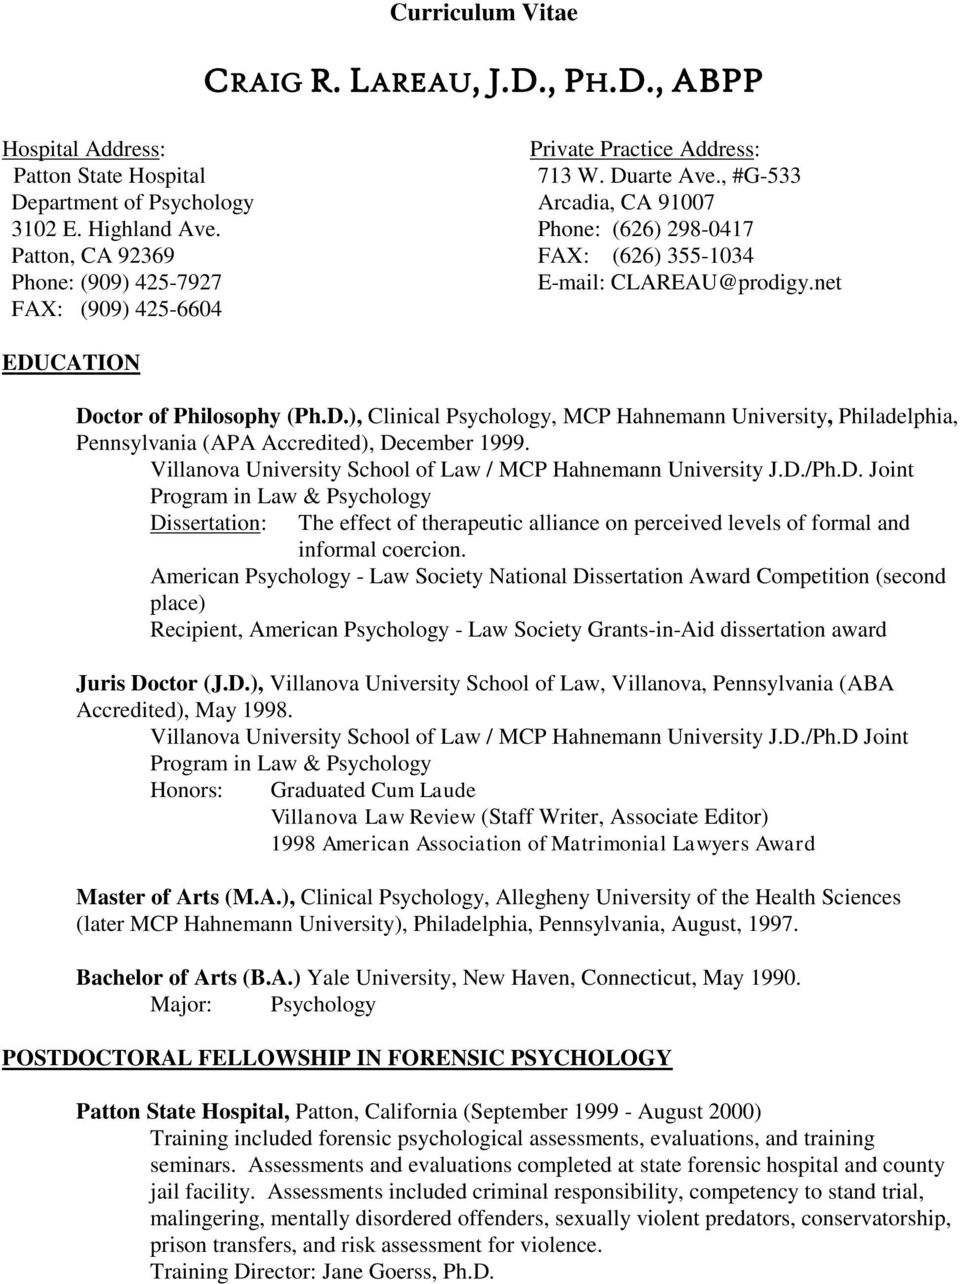 CATION Doctor of Philosophy (Ph.D.), Clinical Psychology, MCP Hahnemann University, Philadelphia, Pennsylvania (APA Accredited), December 1999.